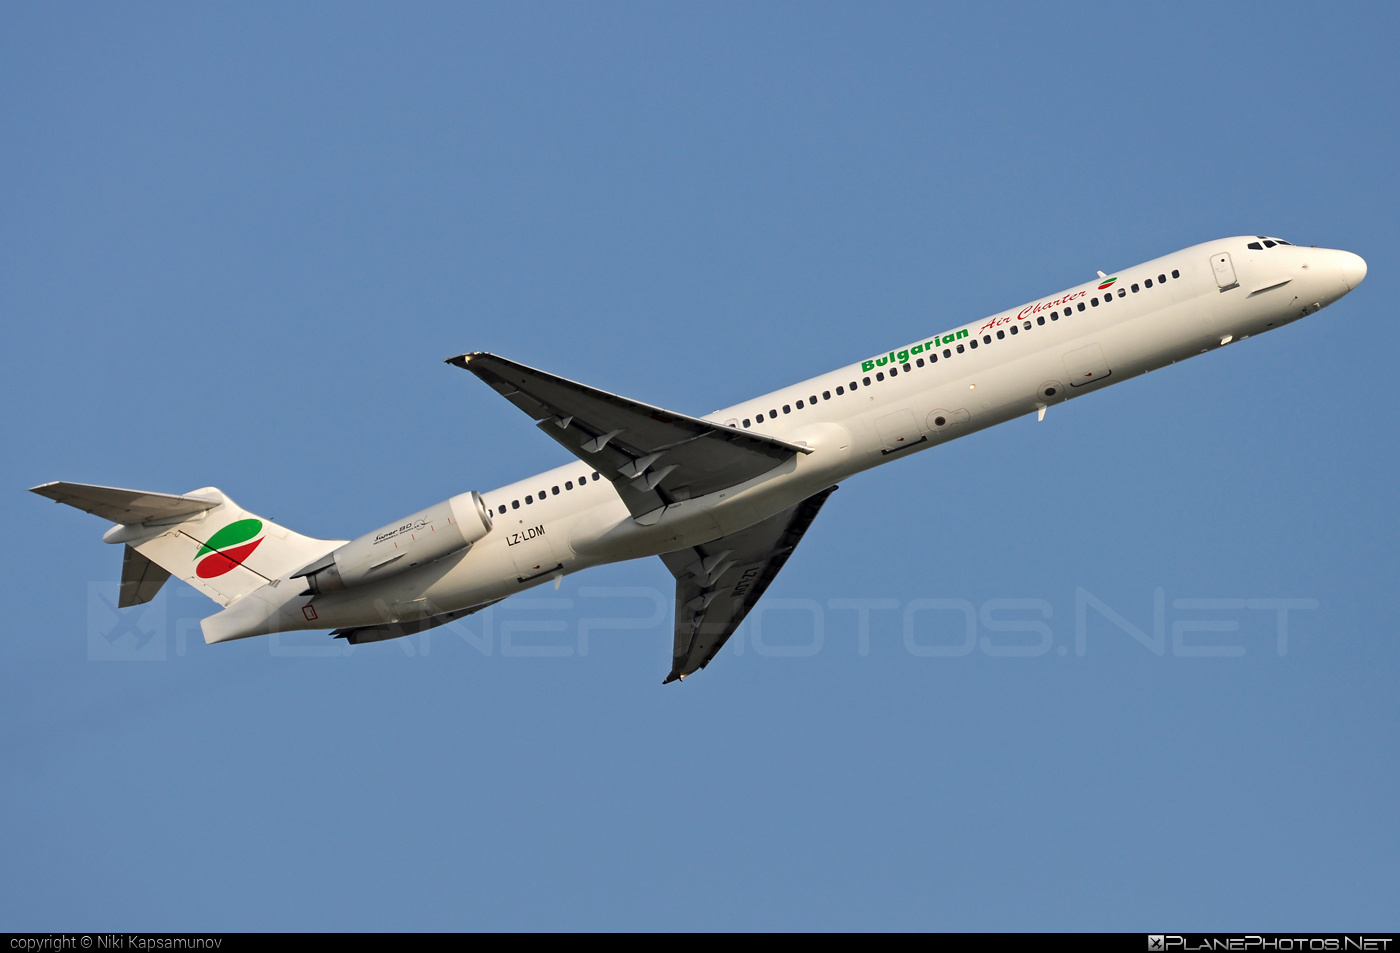 McDonnell Douglas MD-82 - LZ-LDM operated by Bulgarian Air Charter #bulgarianaircharter #mcdonnelldouglas #mcdonnelldouglas80 #mcdonnelldouglas82 #mcdonnelldouglasmd80 #mcdonnelldouglasmd82 #md80 #md82